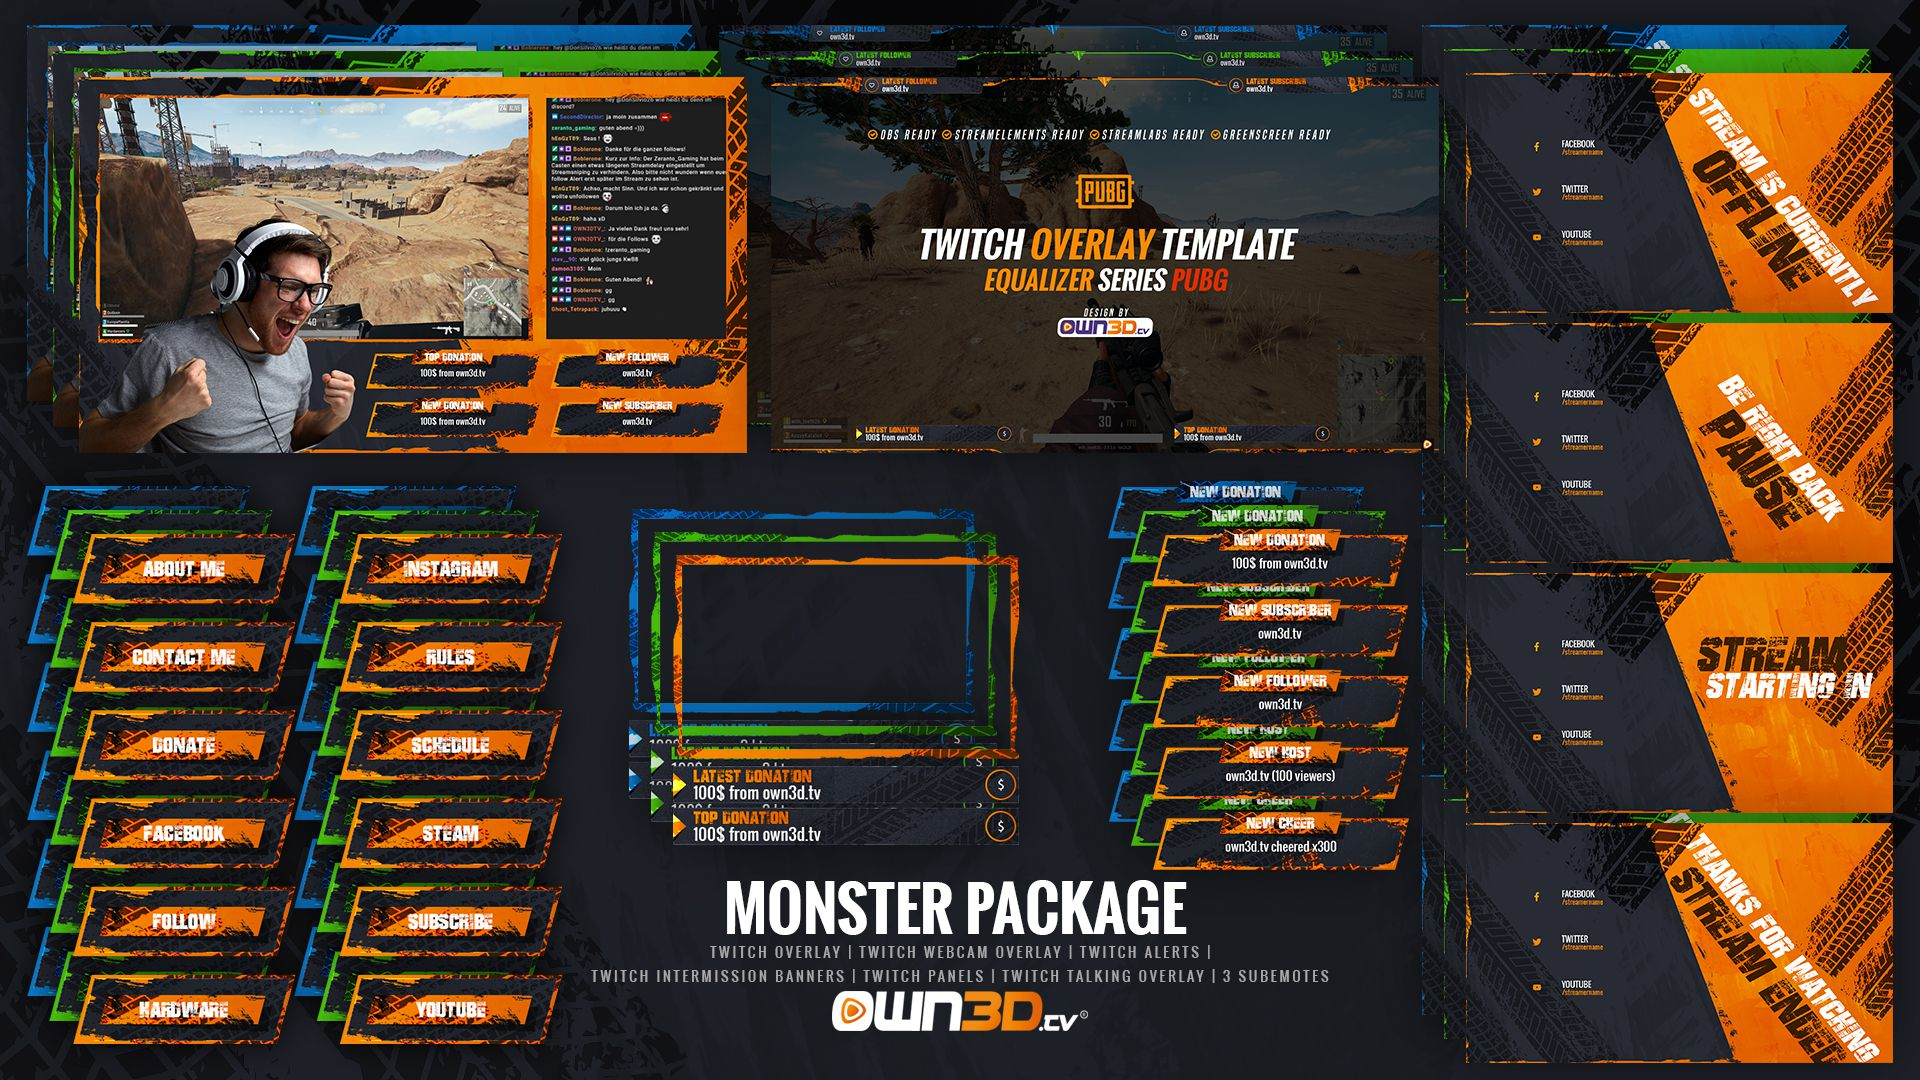 equalizer-series-ALL-twitch-overlay-package-03-monster.jpg